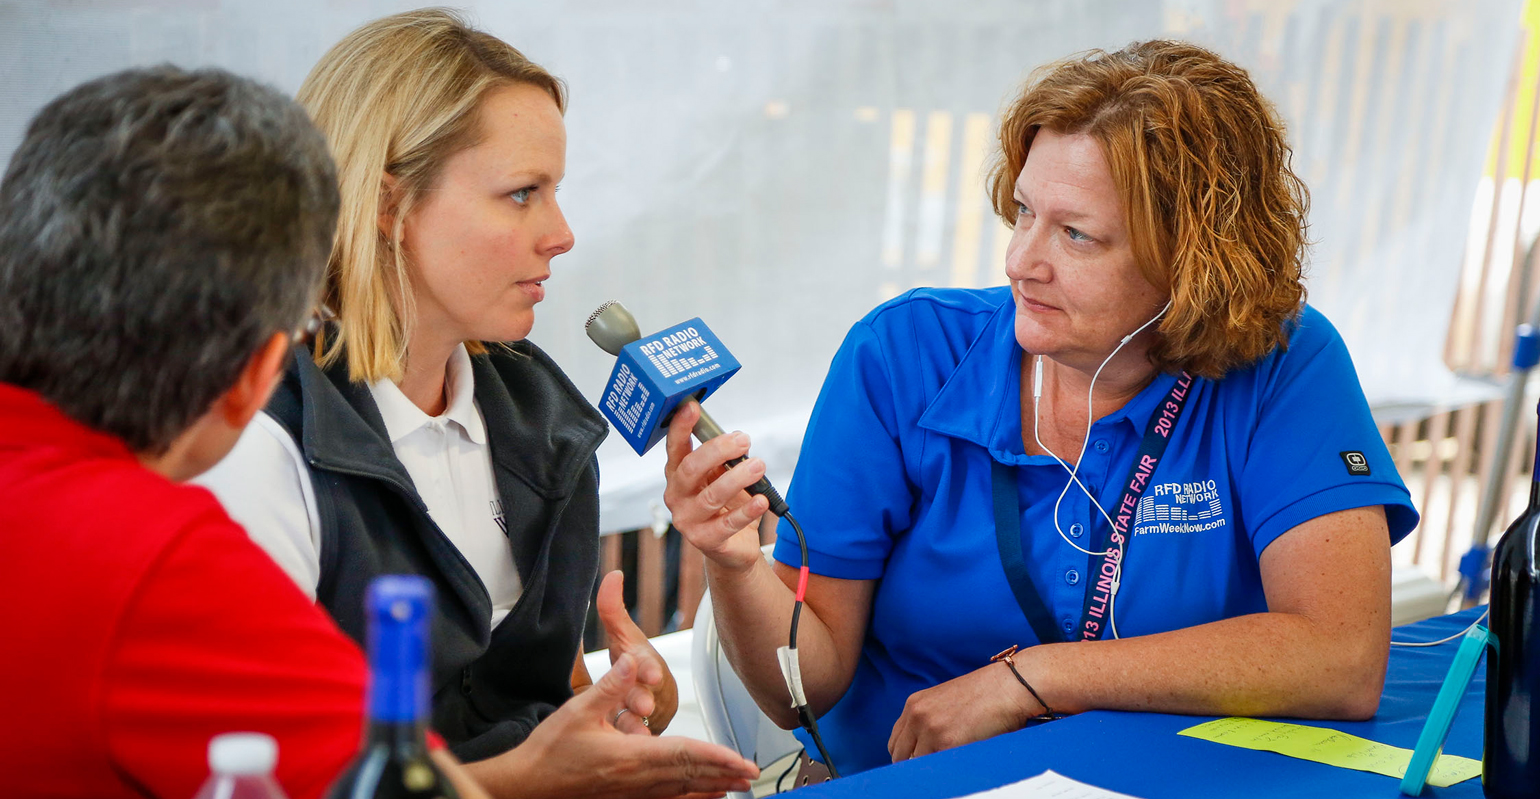 Rita Frazer doing interview